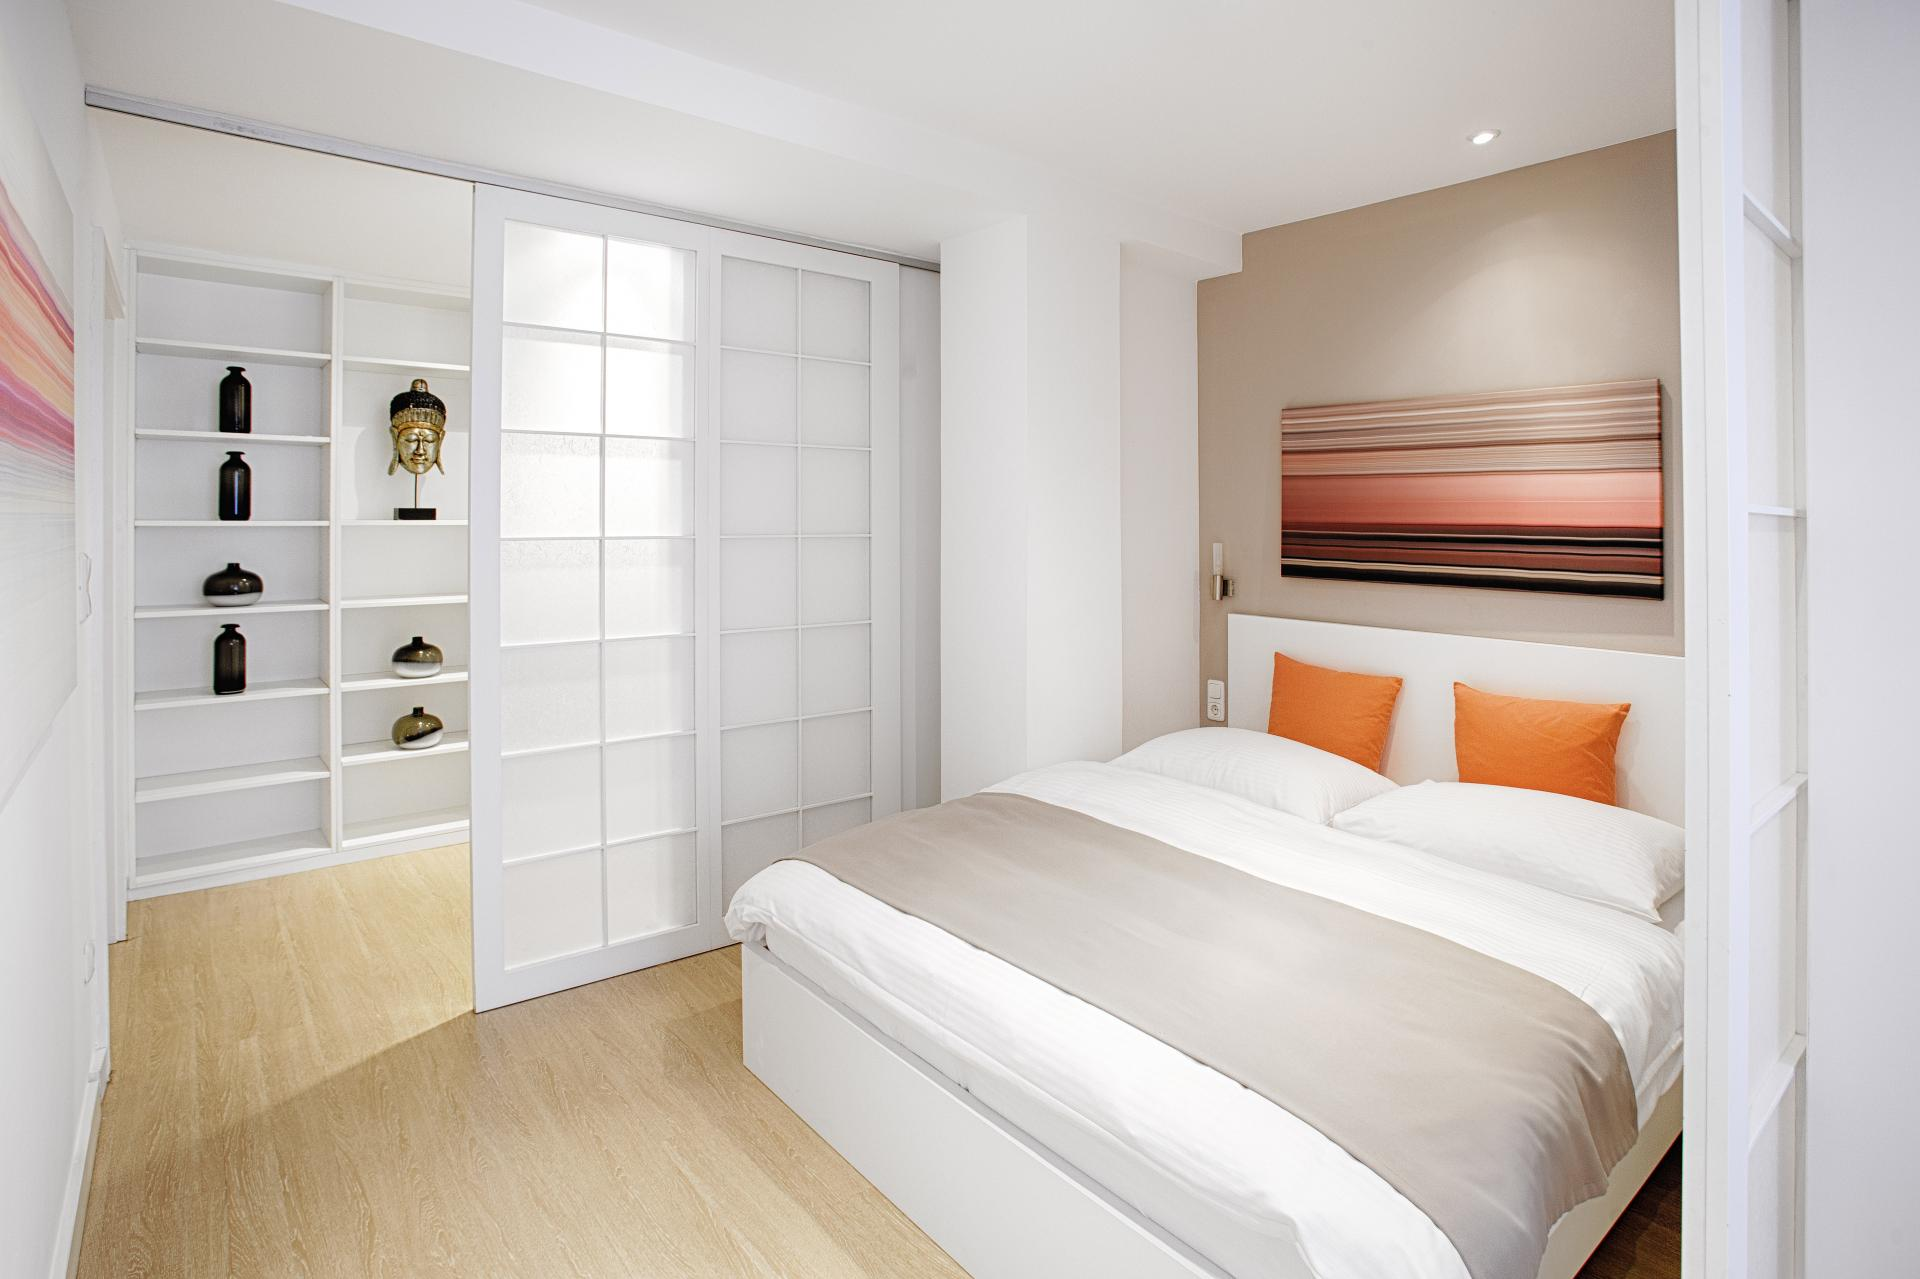 Bedroom at Boardinghouse Serviced Apartments